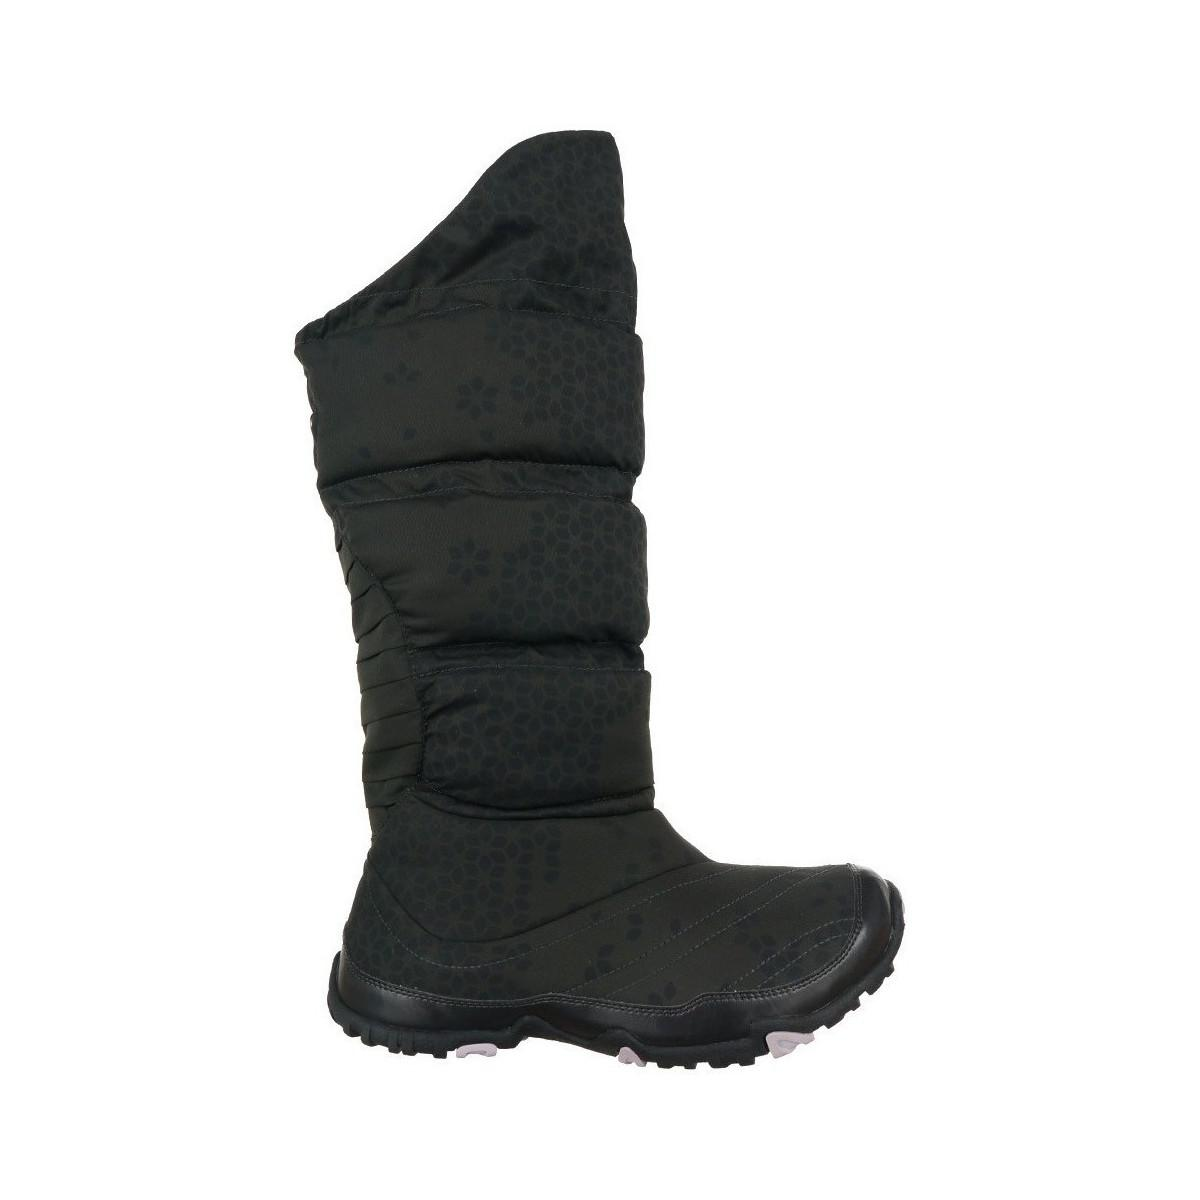 adidas Originals Aniuboot Women's Snow Boots In Black